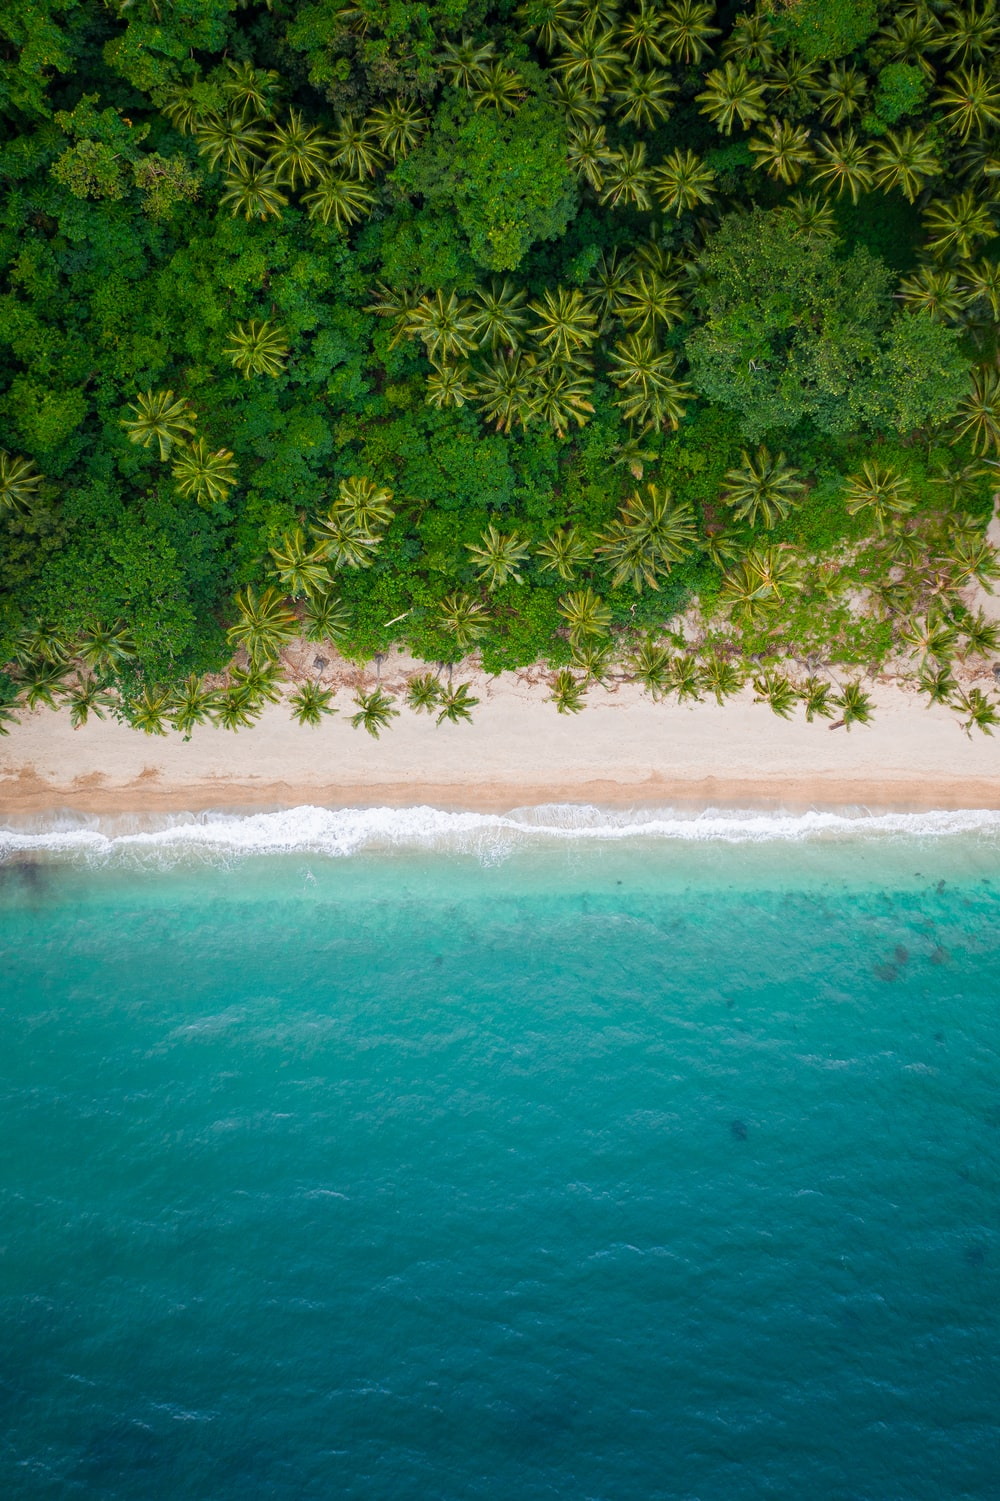 aerial view of green trees on beach during daytime